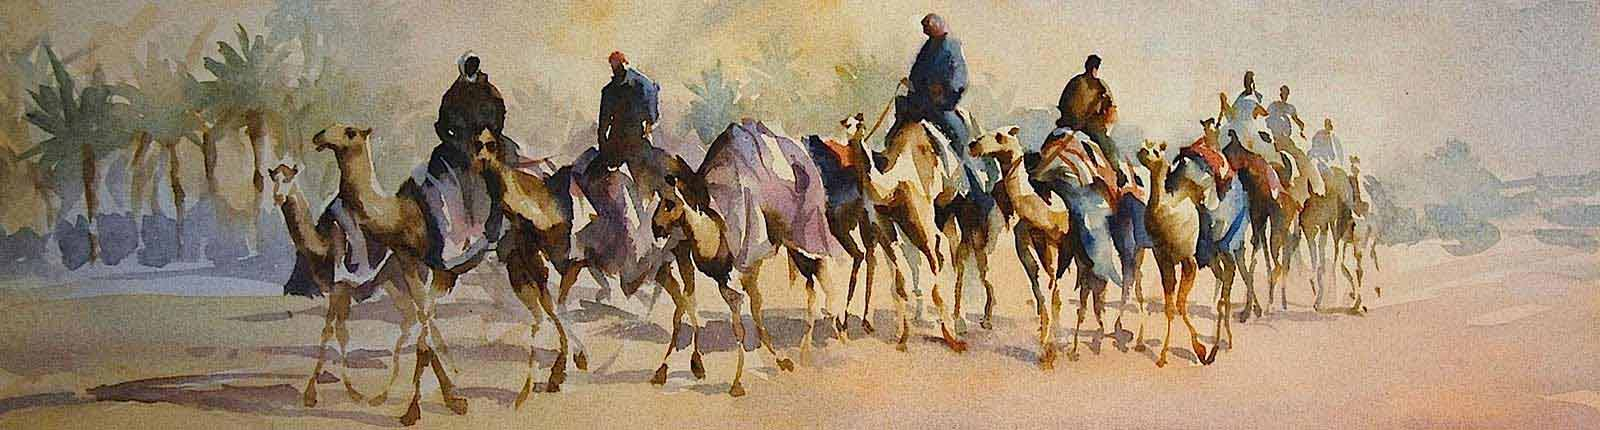 Painting of camel train, watercolor by Trevor Waugh